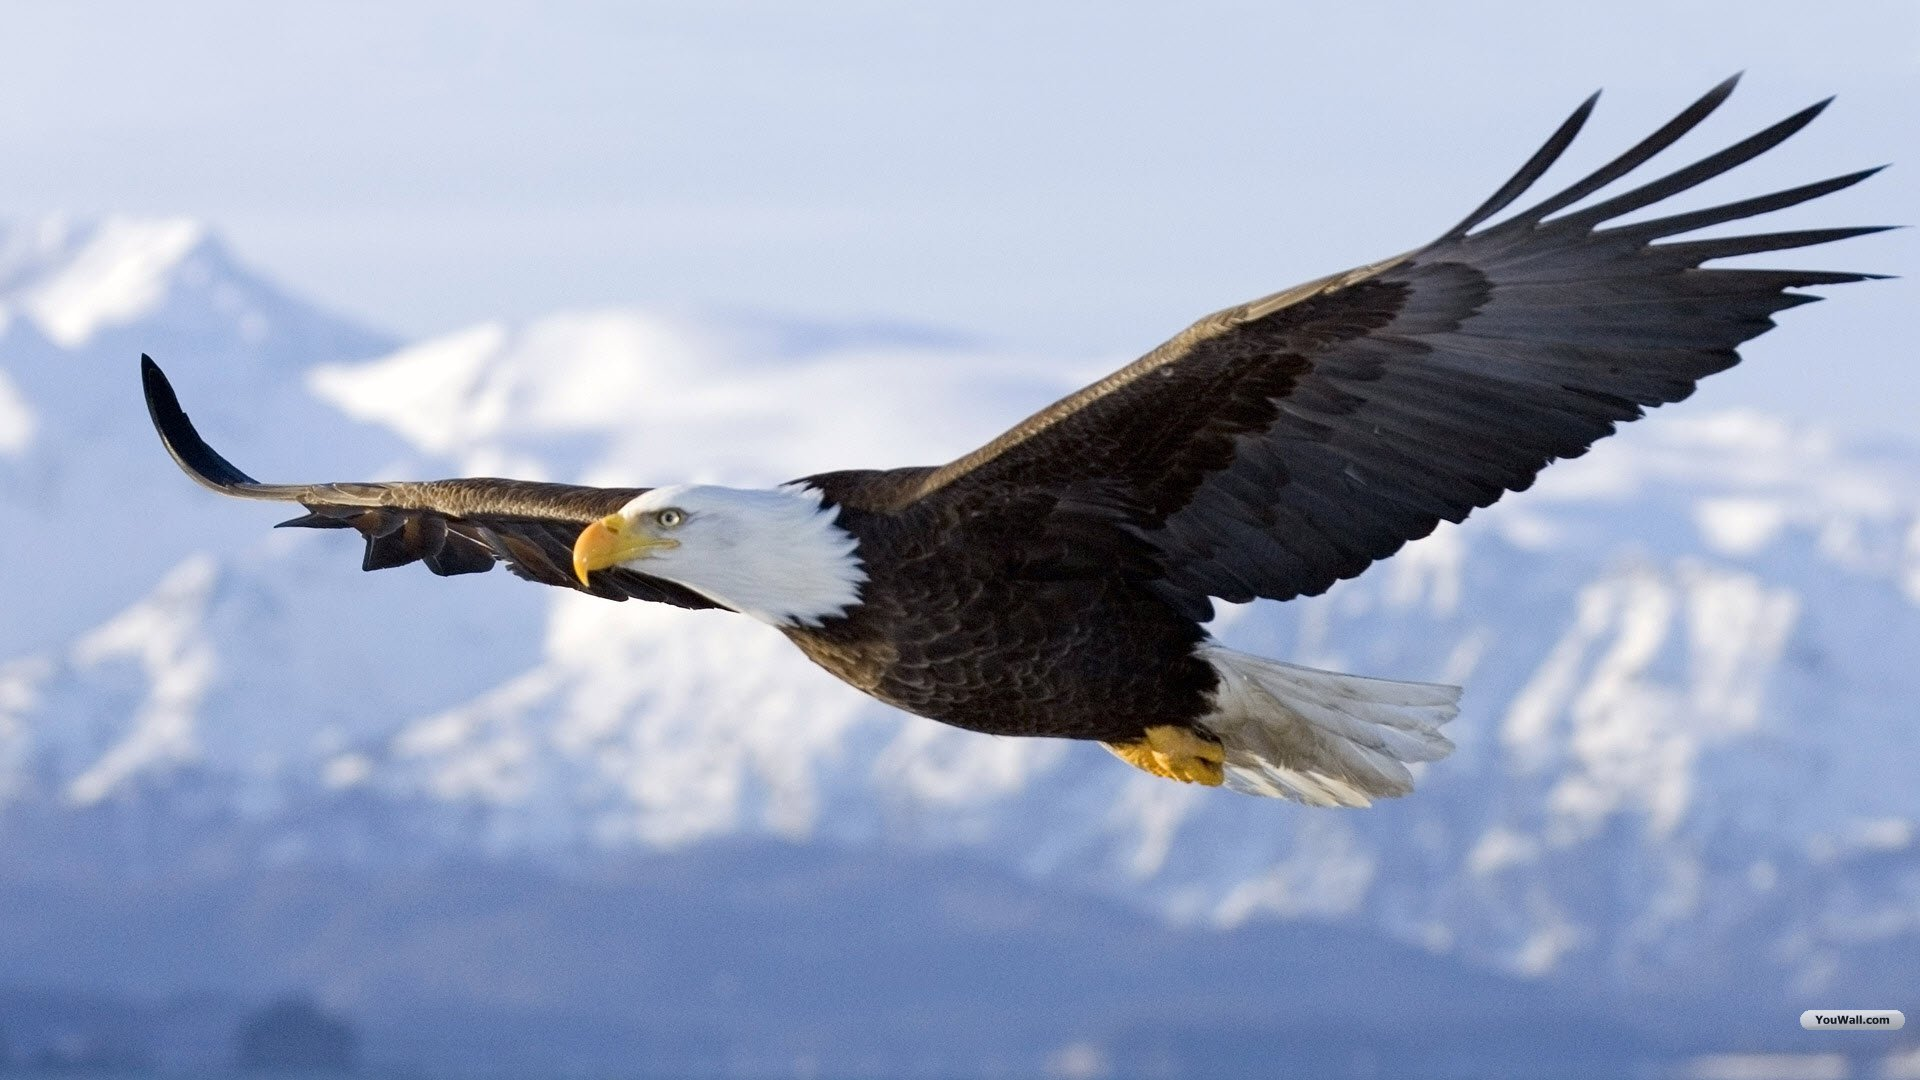 YouWall   Flying Eagle Wallpaper   wallpaperwallpapersfree wallpaper 1920x1080